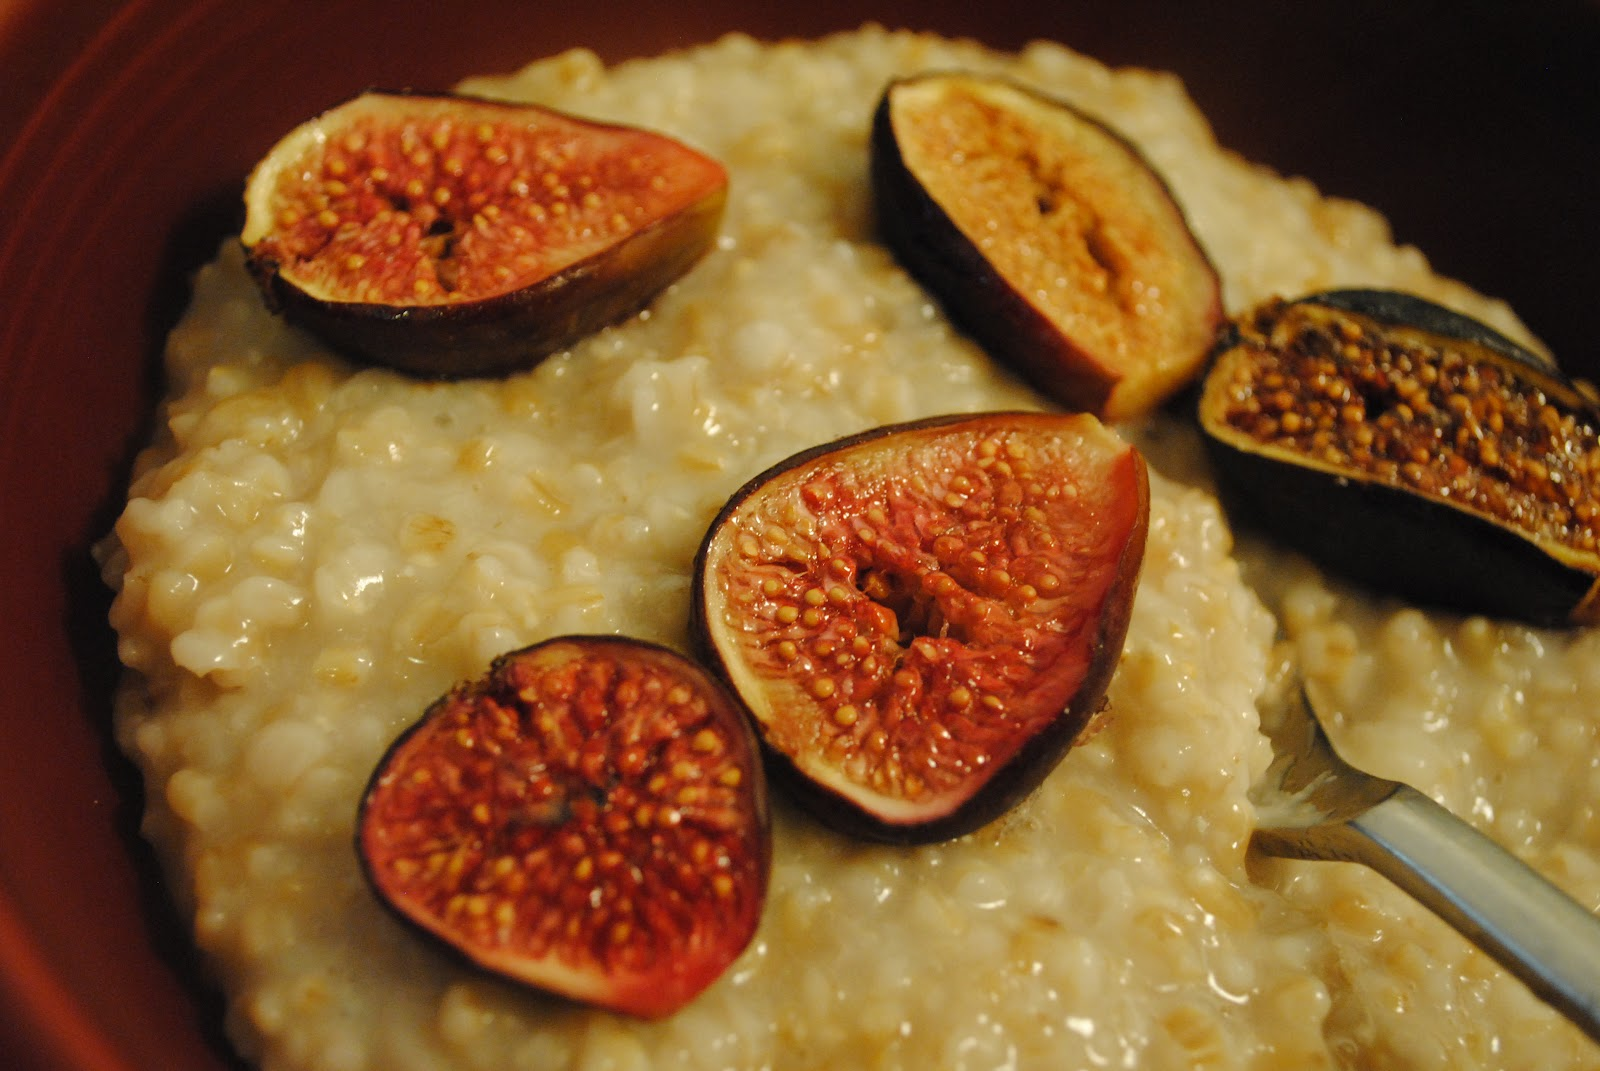 Culinary Adventures with Camilla: Irish Porridge with Roasted Figs